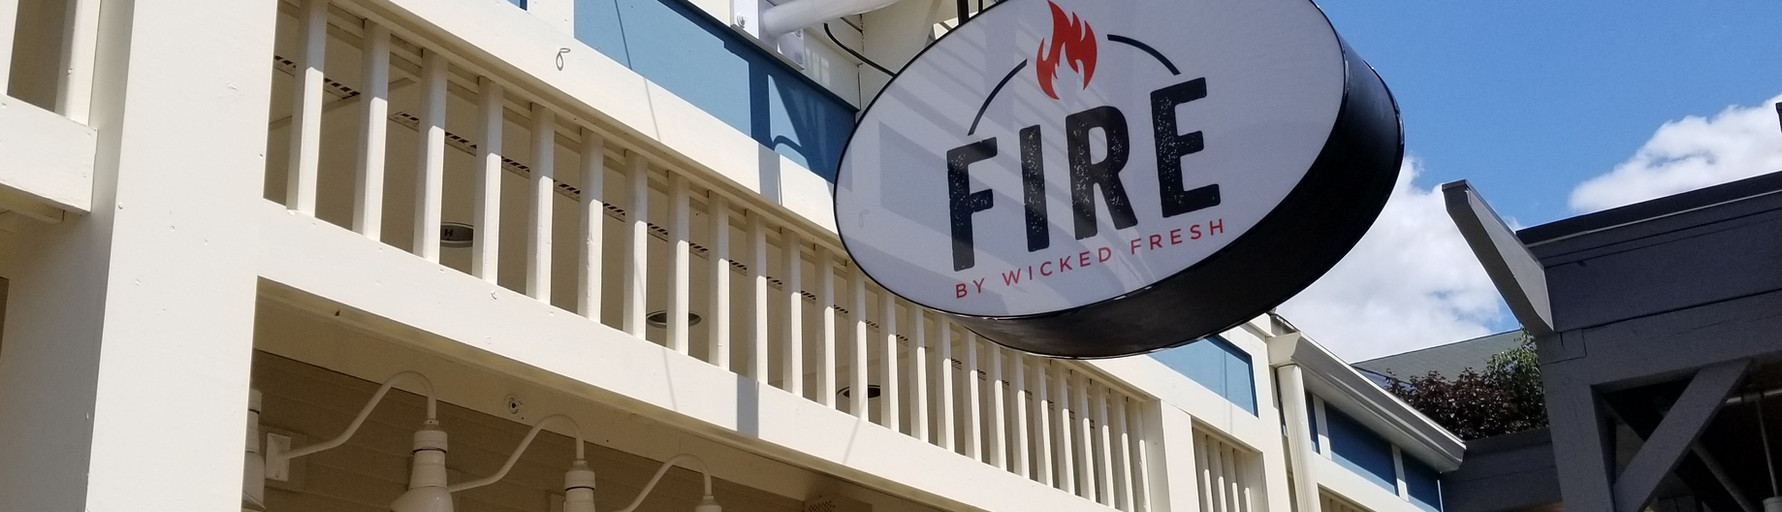 Fire by wicked Int Lit sign.jpg